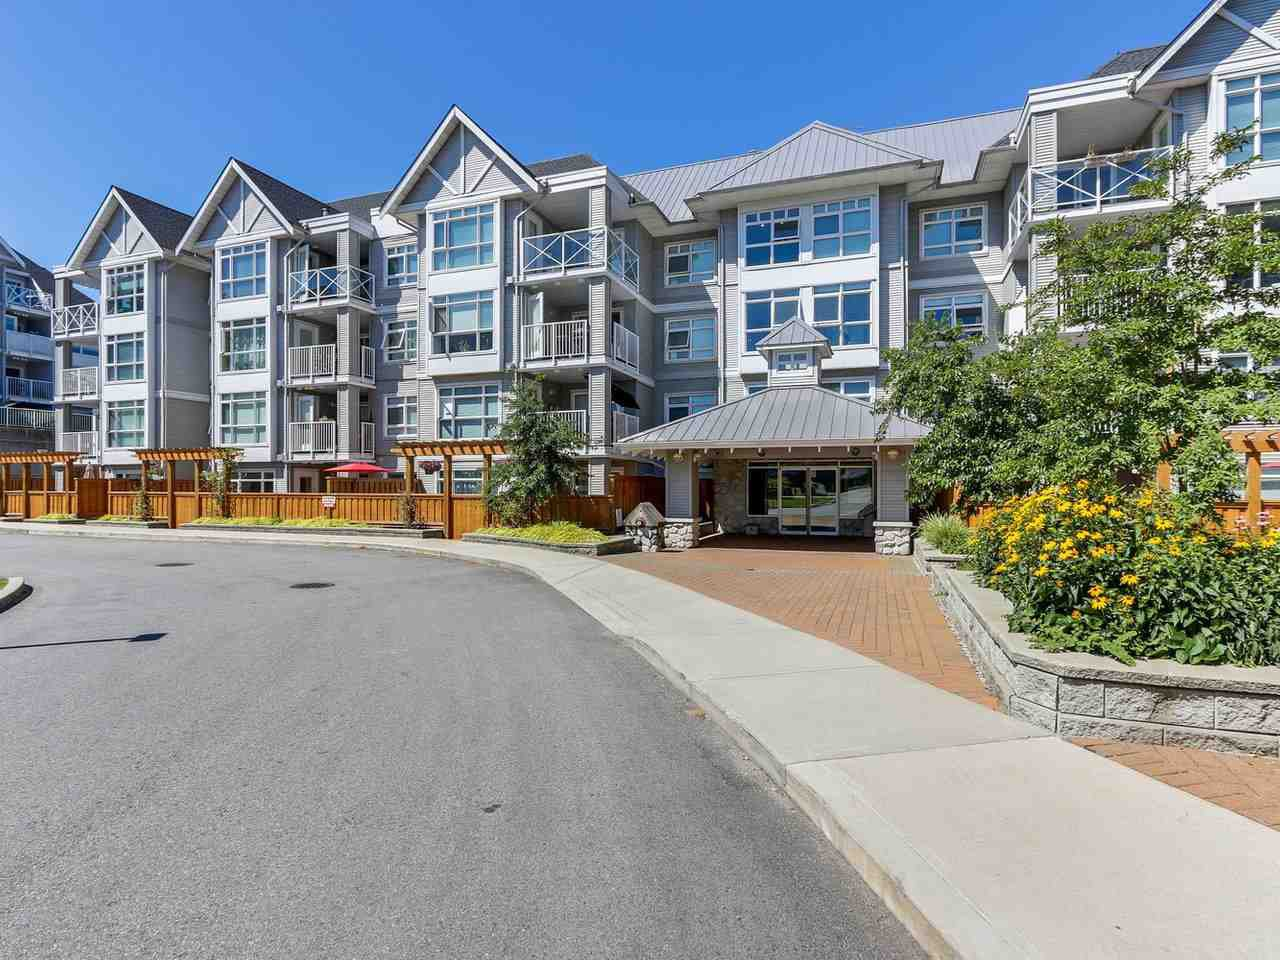 Main Photo: 410 3136 ST JOHNS Street in Port Moody: Port Moody Centre Condo for sale : MLS®# R2292011